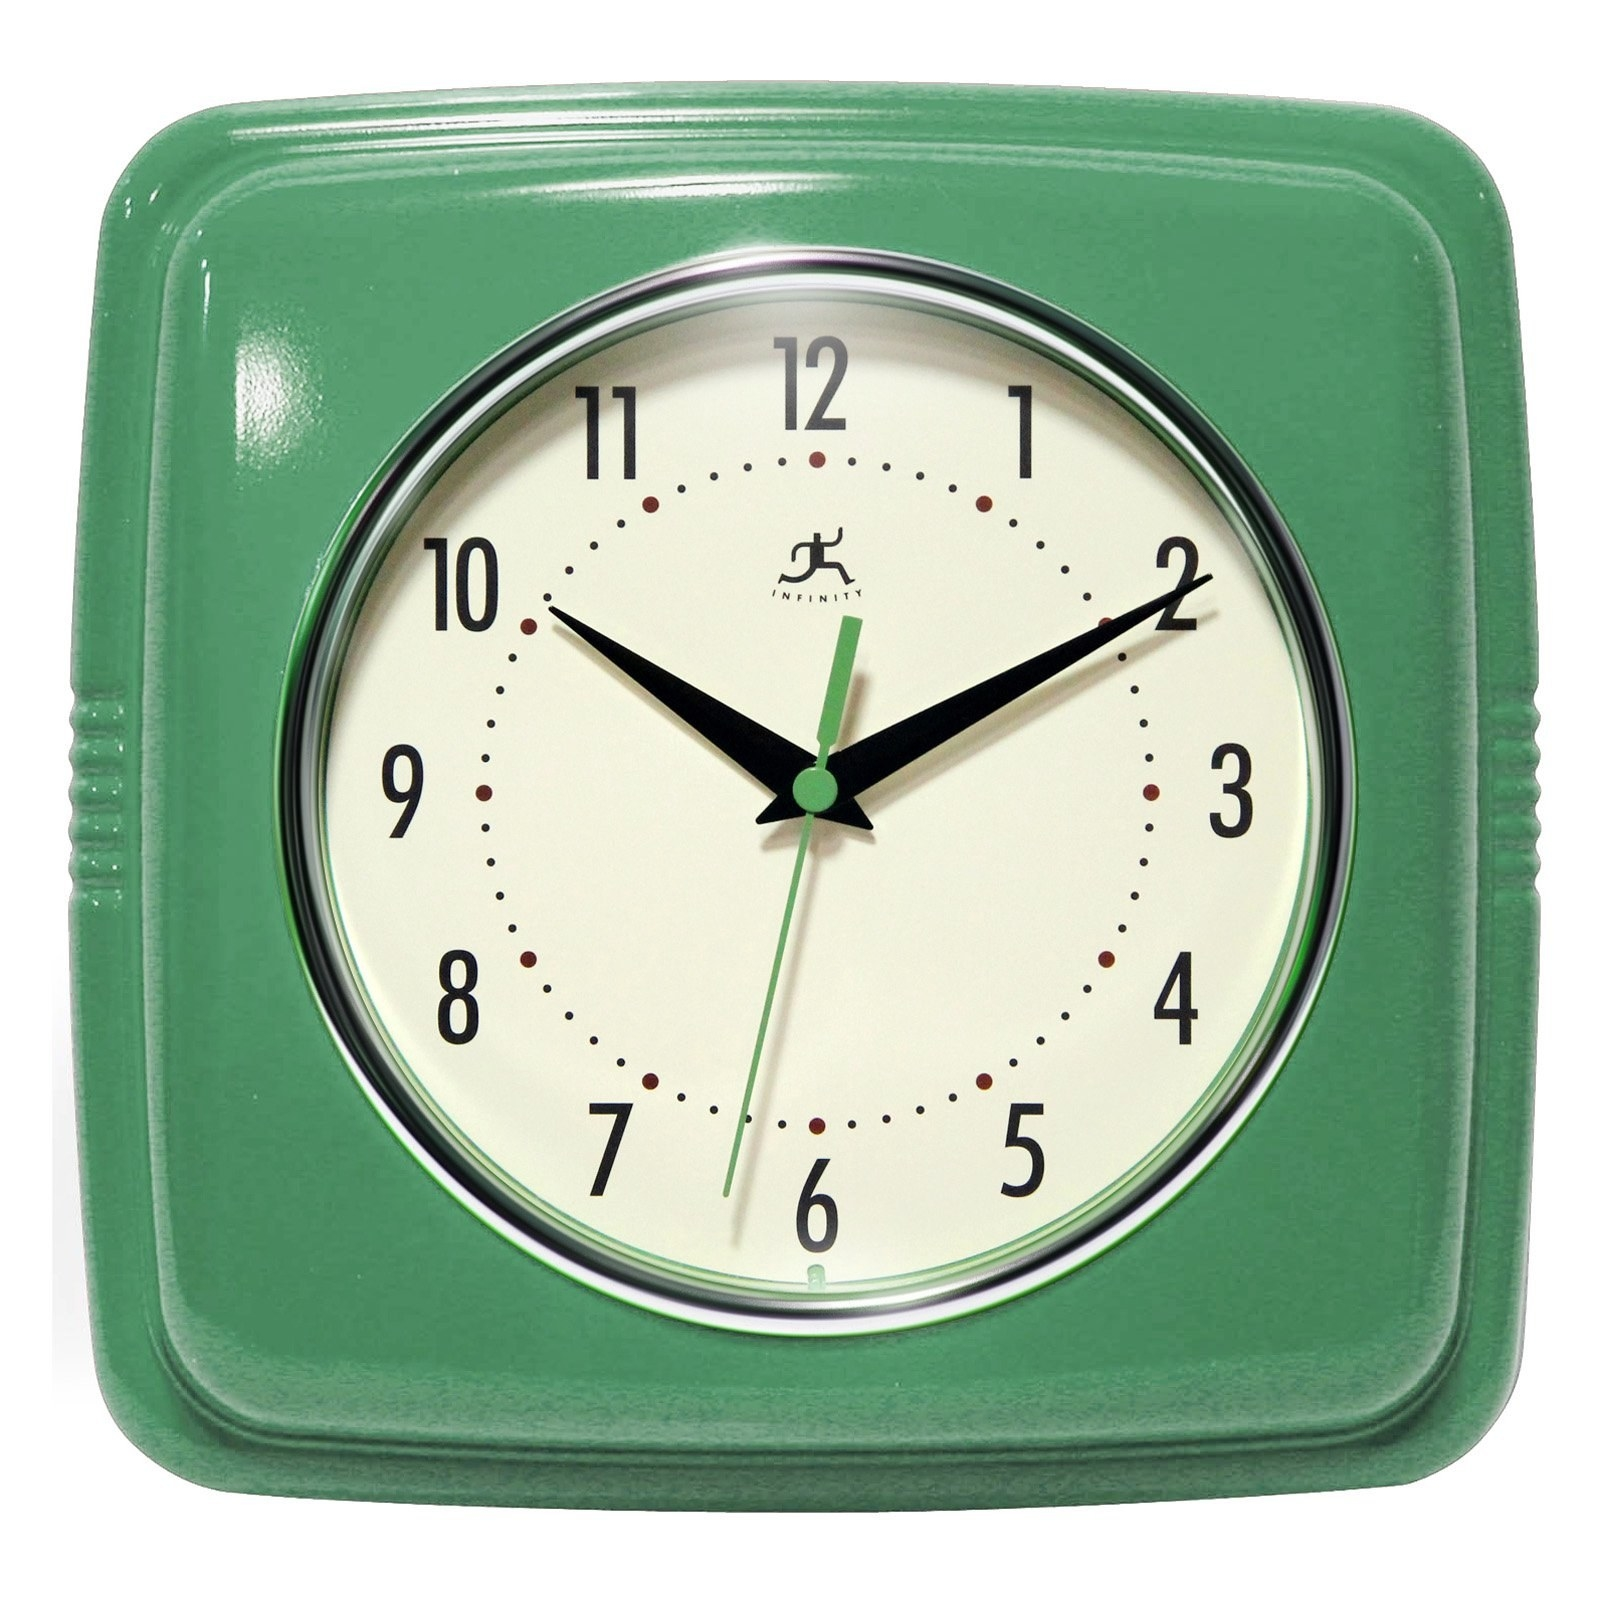 A green square-shaped clock